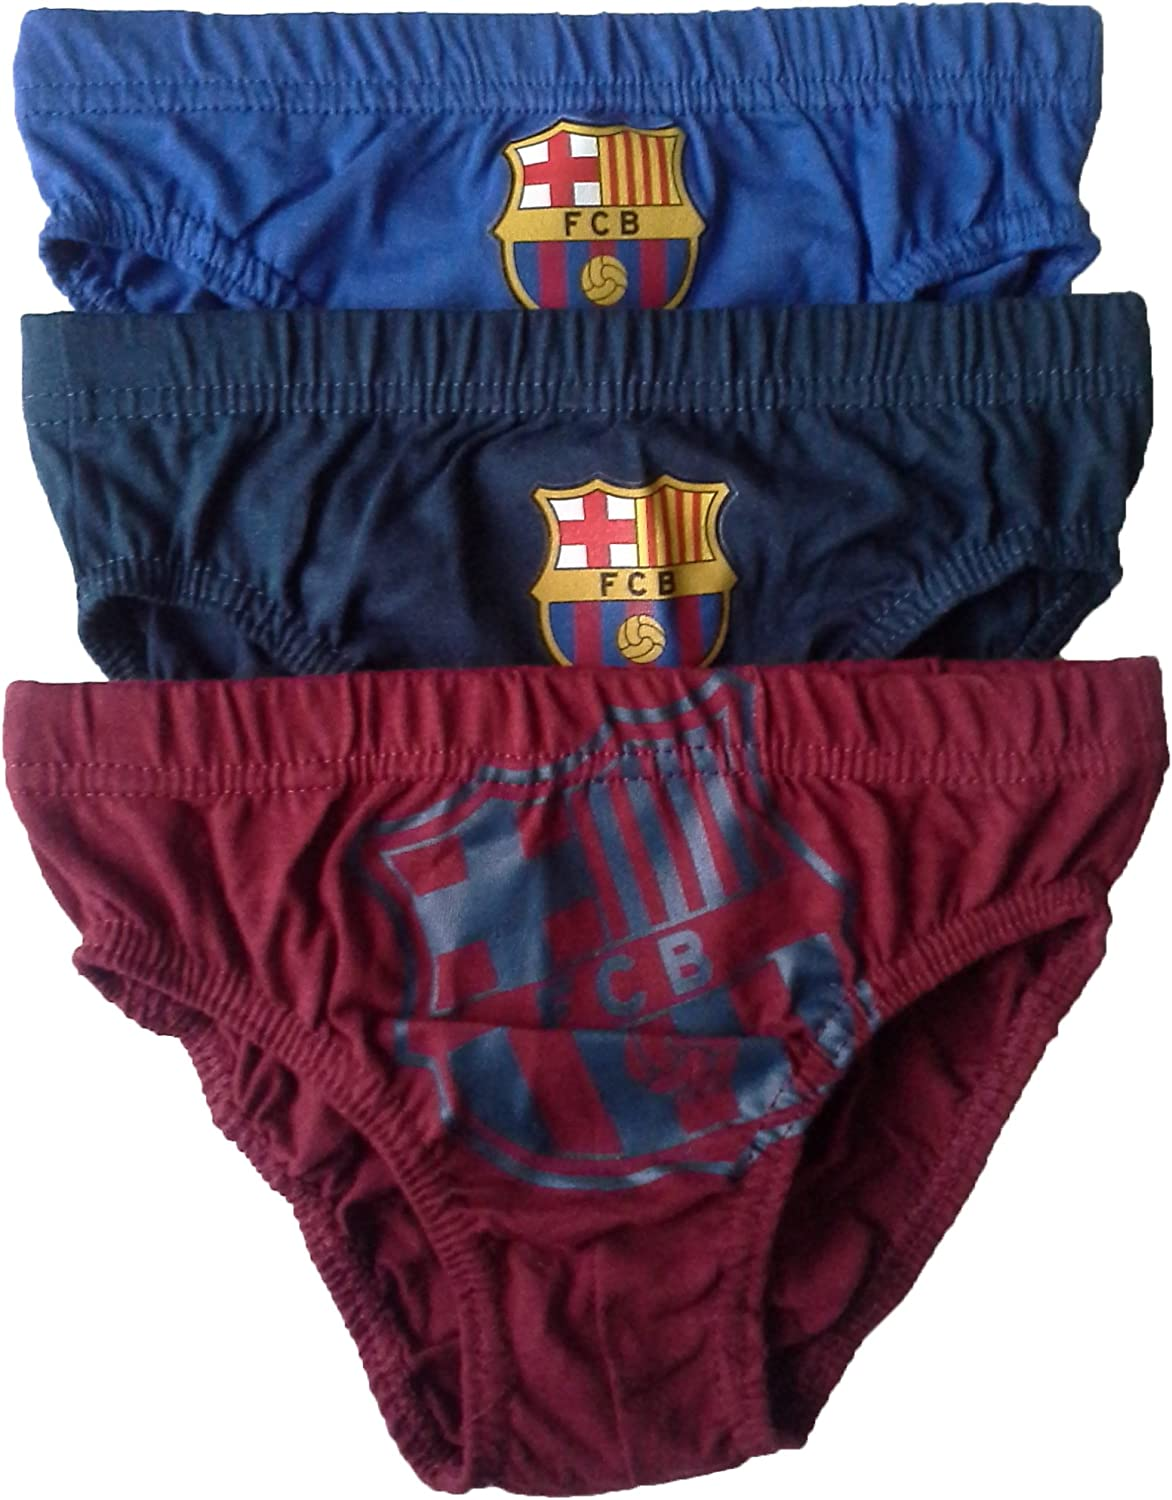 Boys Barcelona Briefs Pants Underpants Underwear Slips - 3 Pack - Official  Licenced 100% Cotton - 2-12 Years (2-3 Years): Amazon.co.uk: Clothing